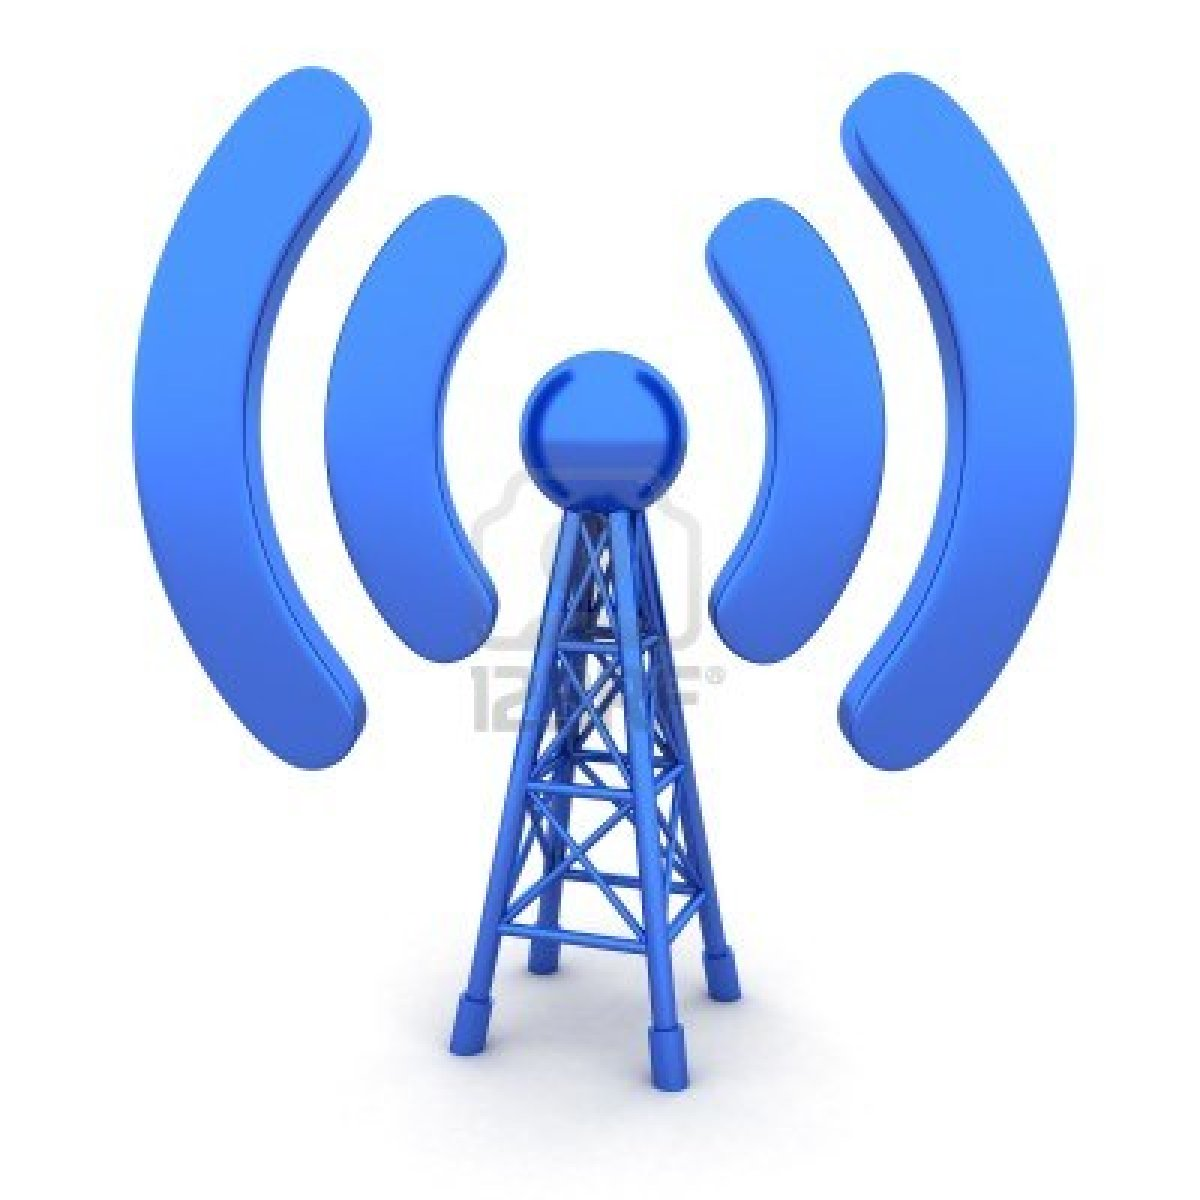 wifi disadvantages A striking advantage of lifi over wifi is that it can boost the network speeds about  100 times faster that the conventional wifi system available.